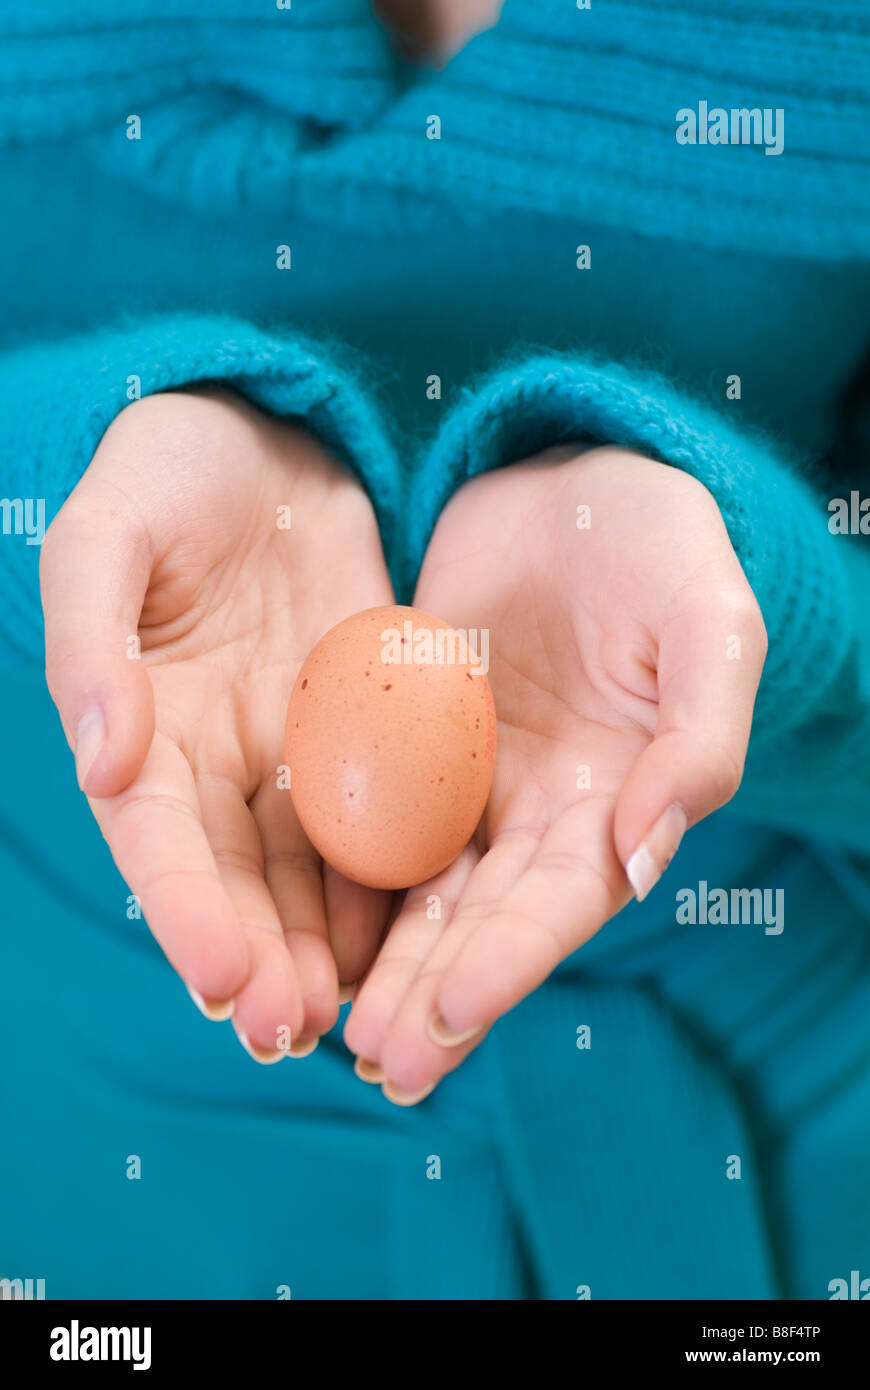 Close up of a woman's hands holding an egg - Stock Image